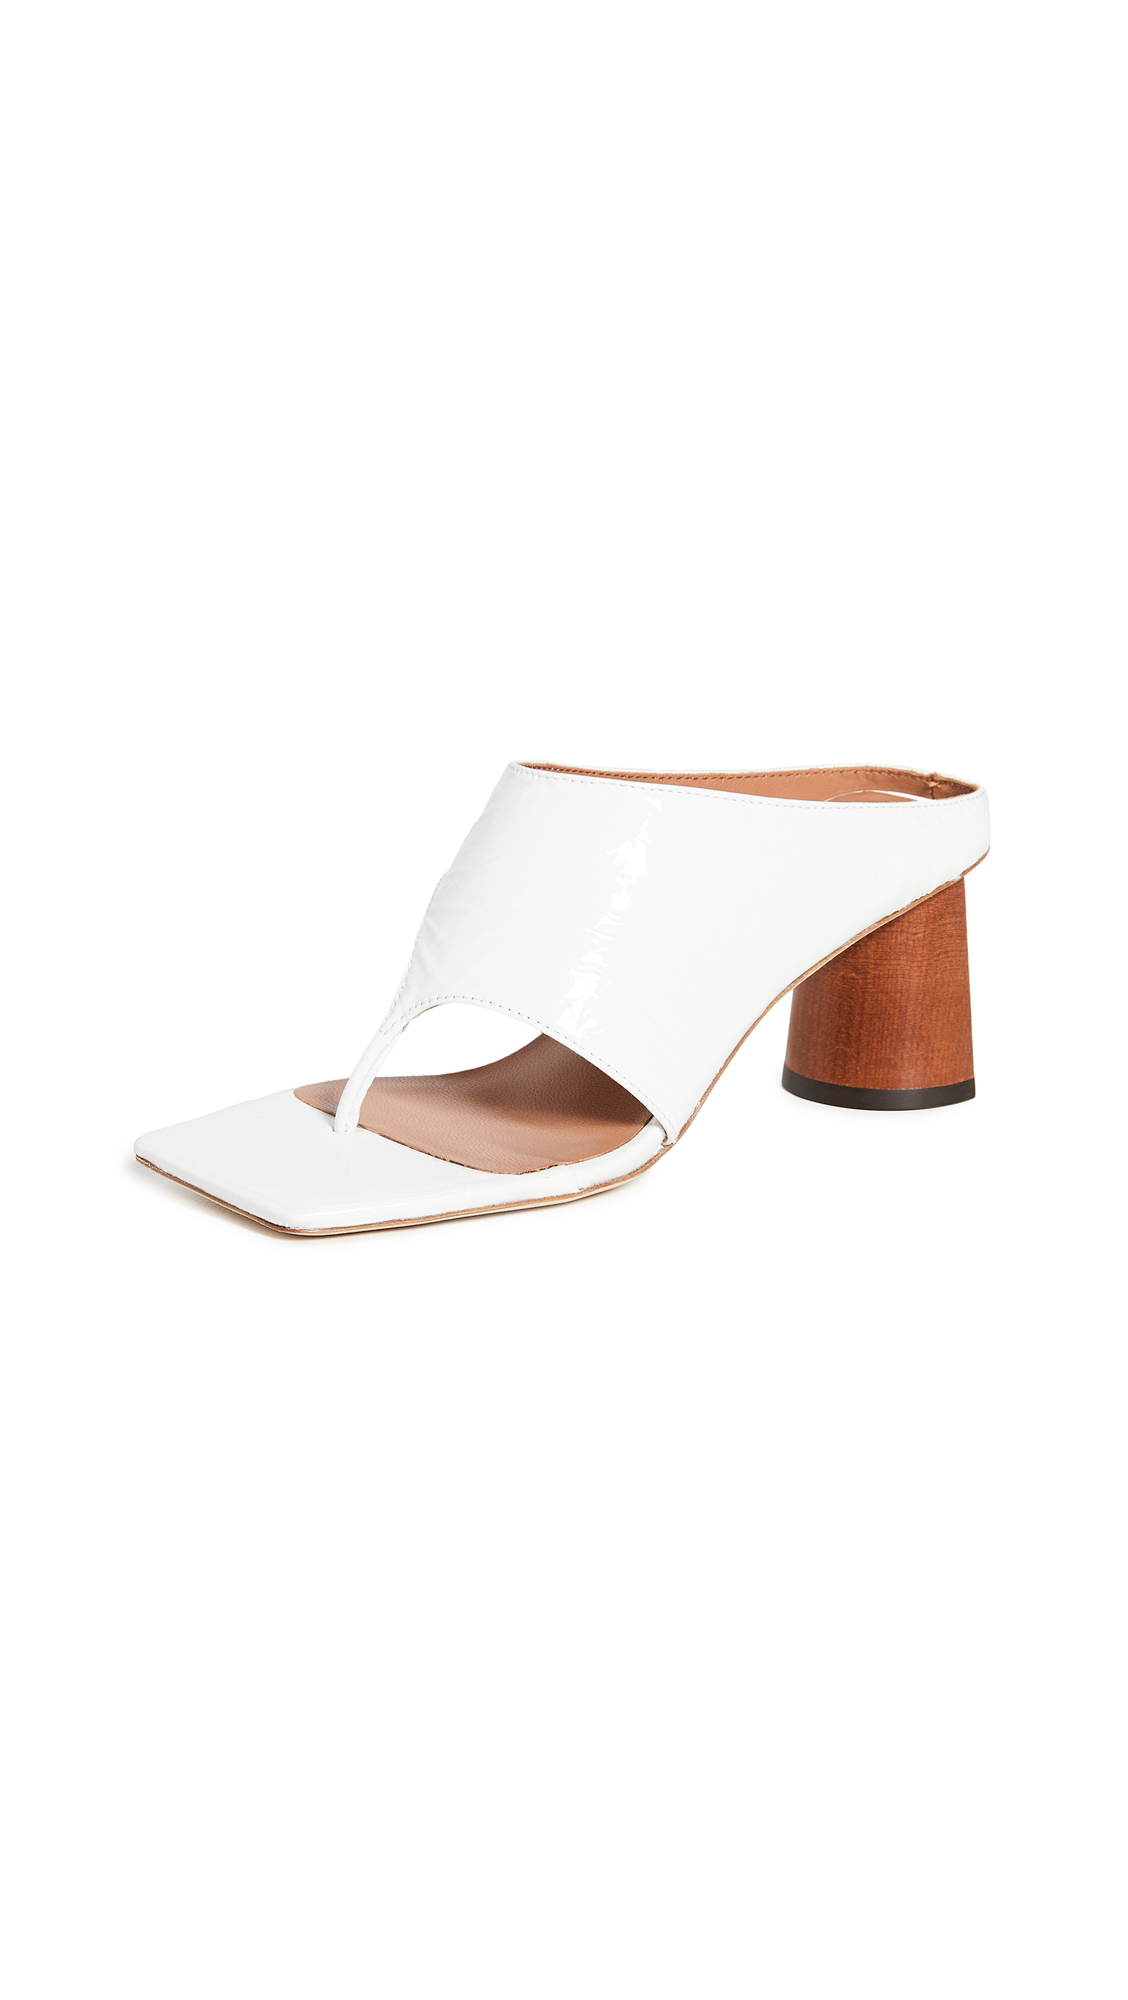 Rejina Pyo Lina Sandals 60mm - 50% Off Sale